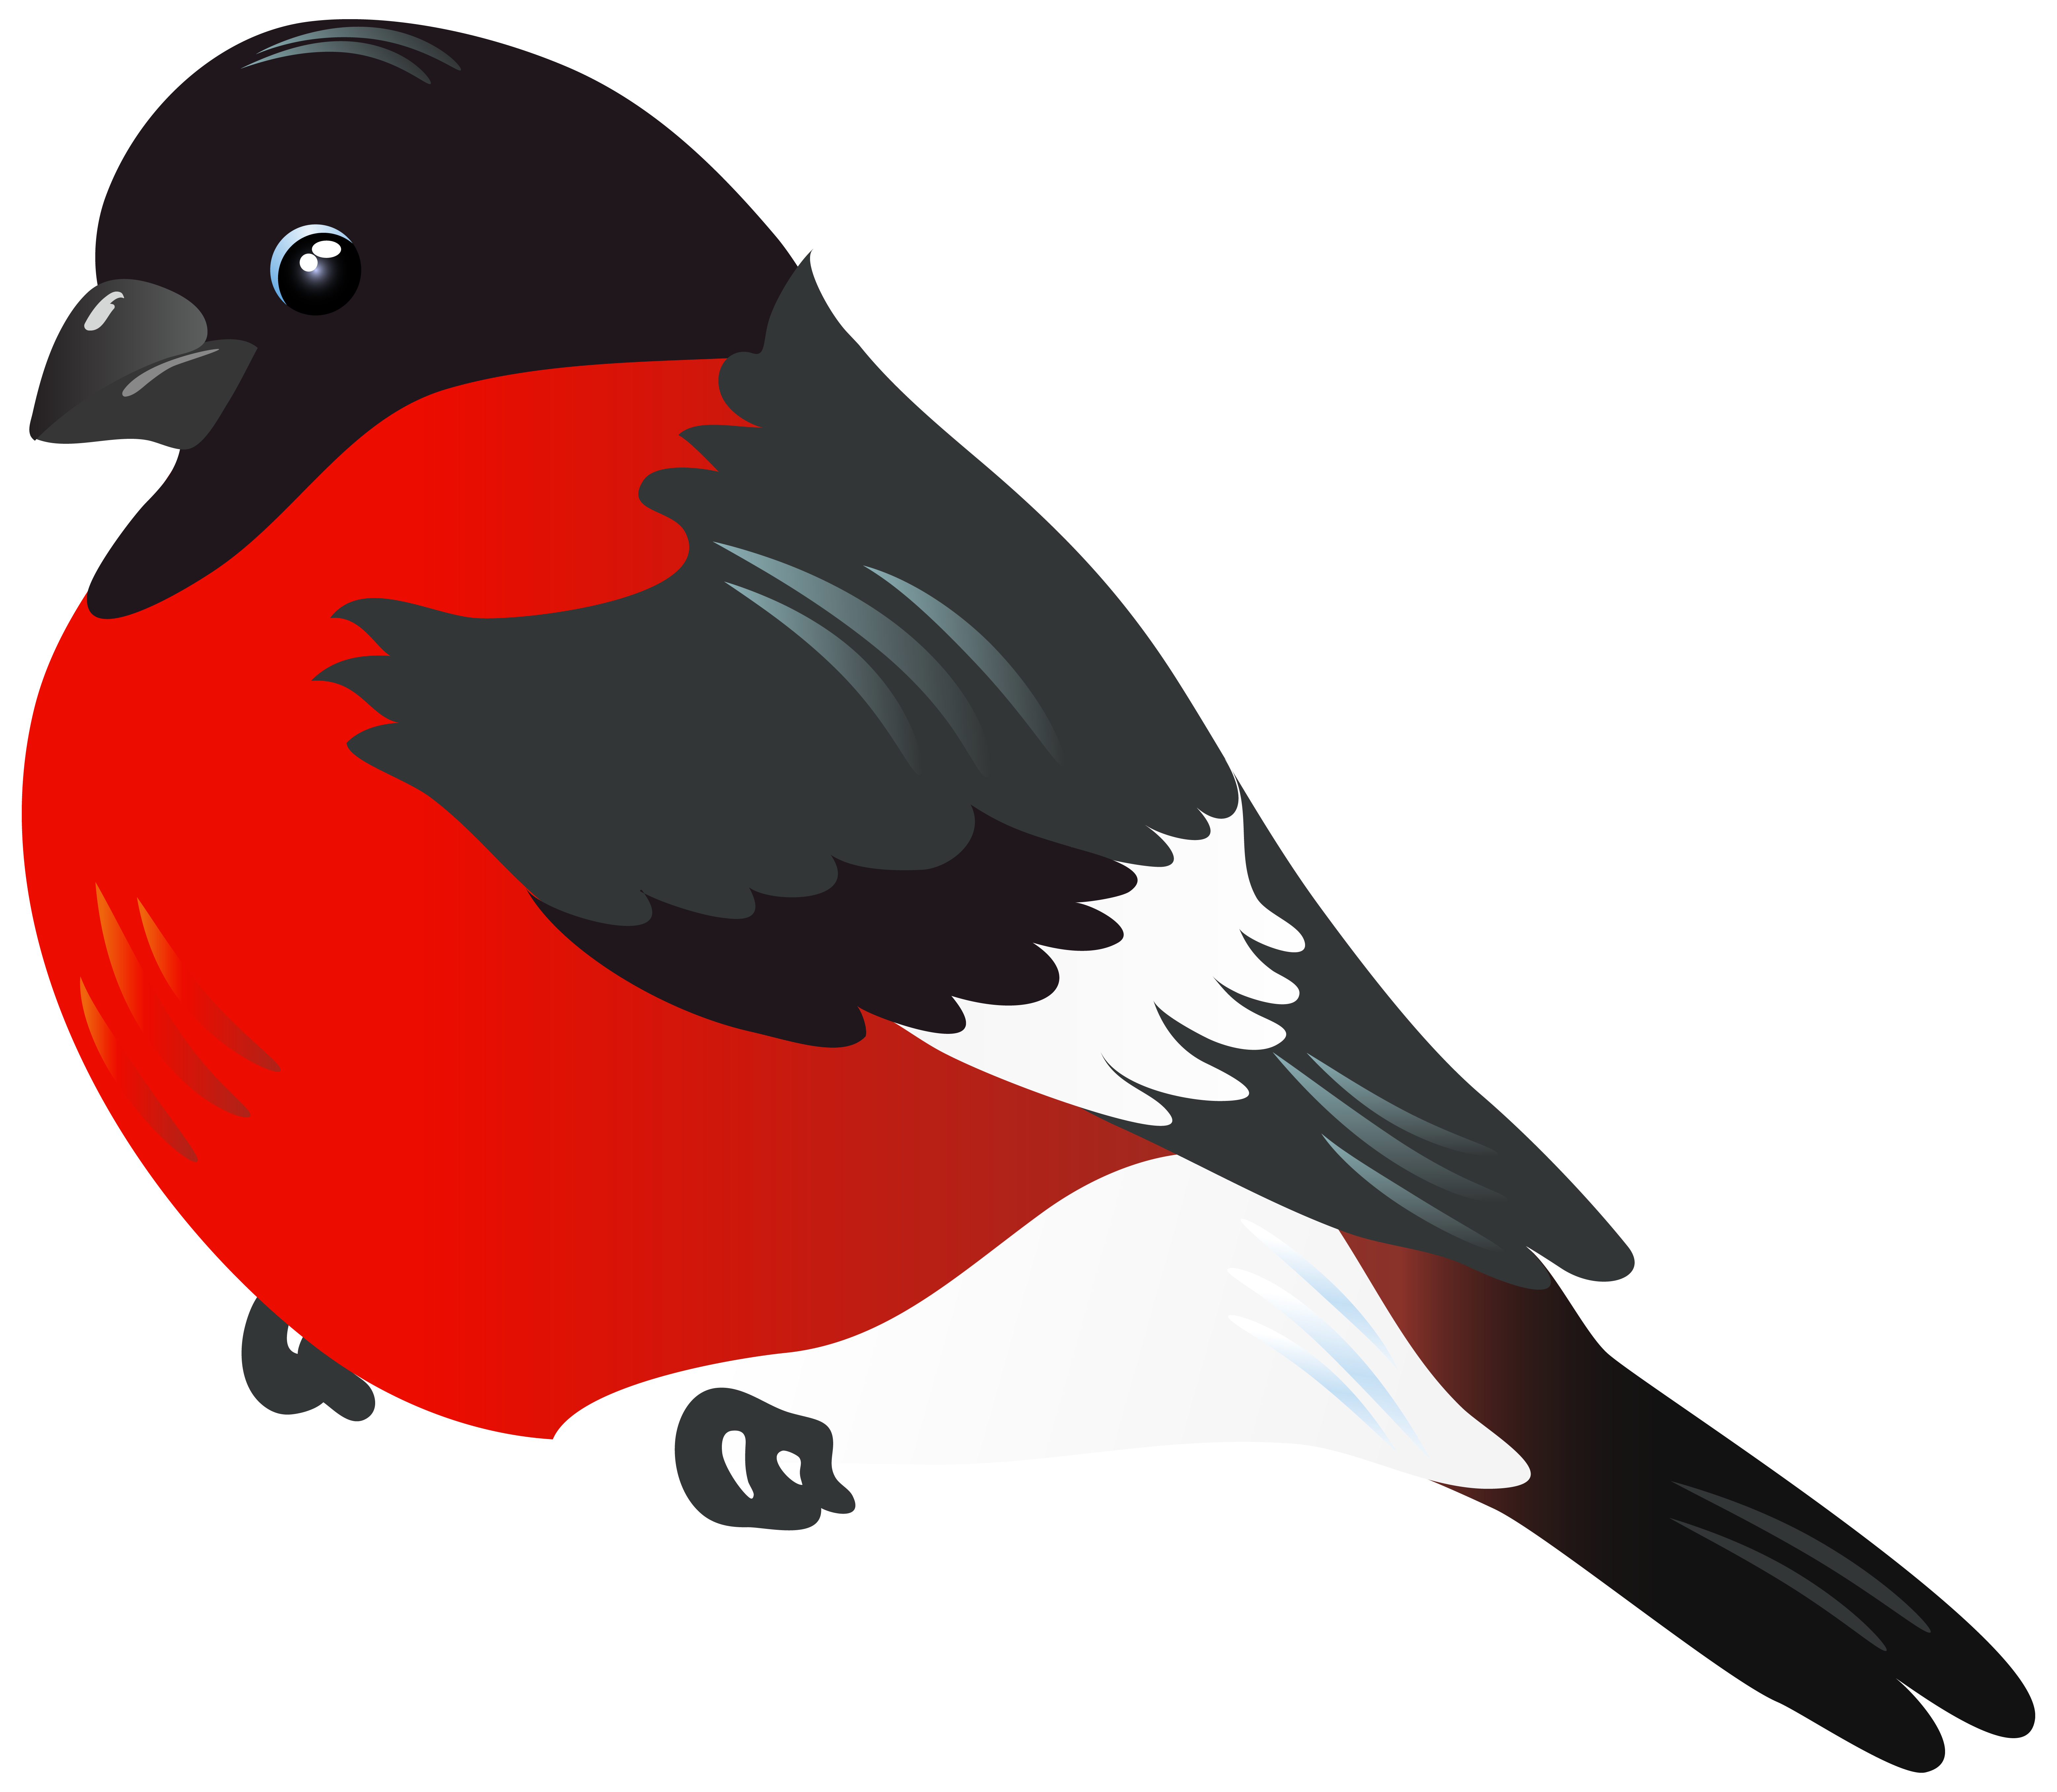 Red bird png. Clipart image gallery yopriceville